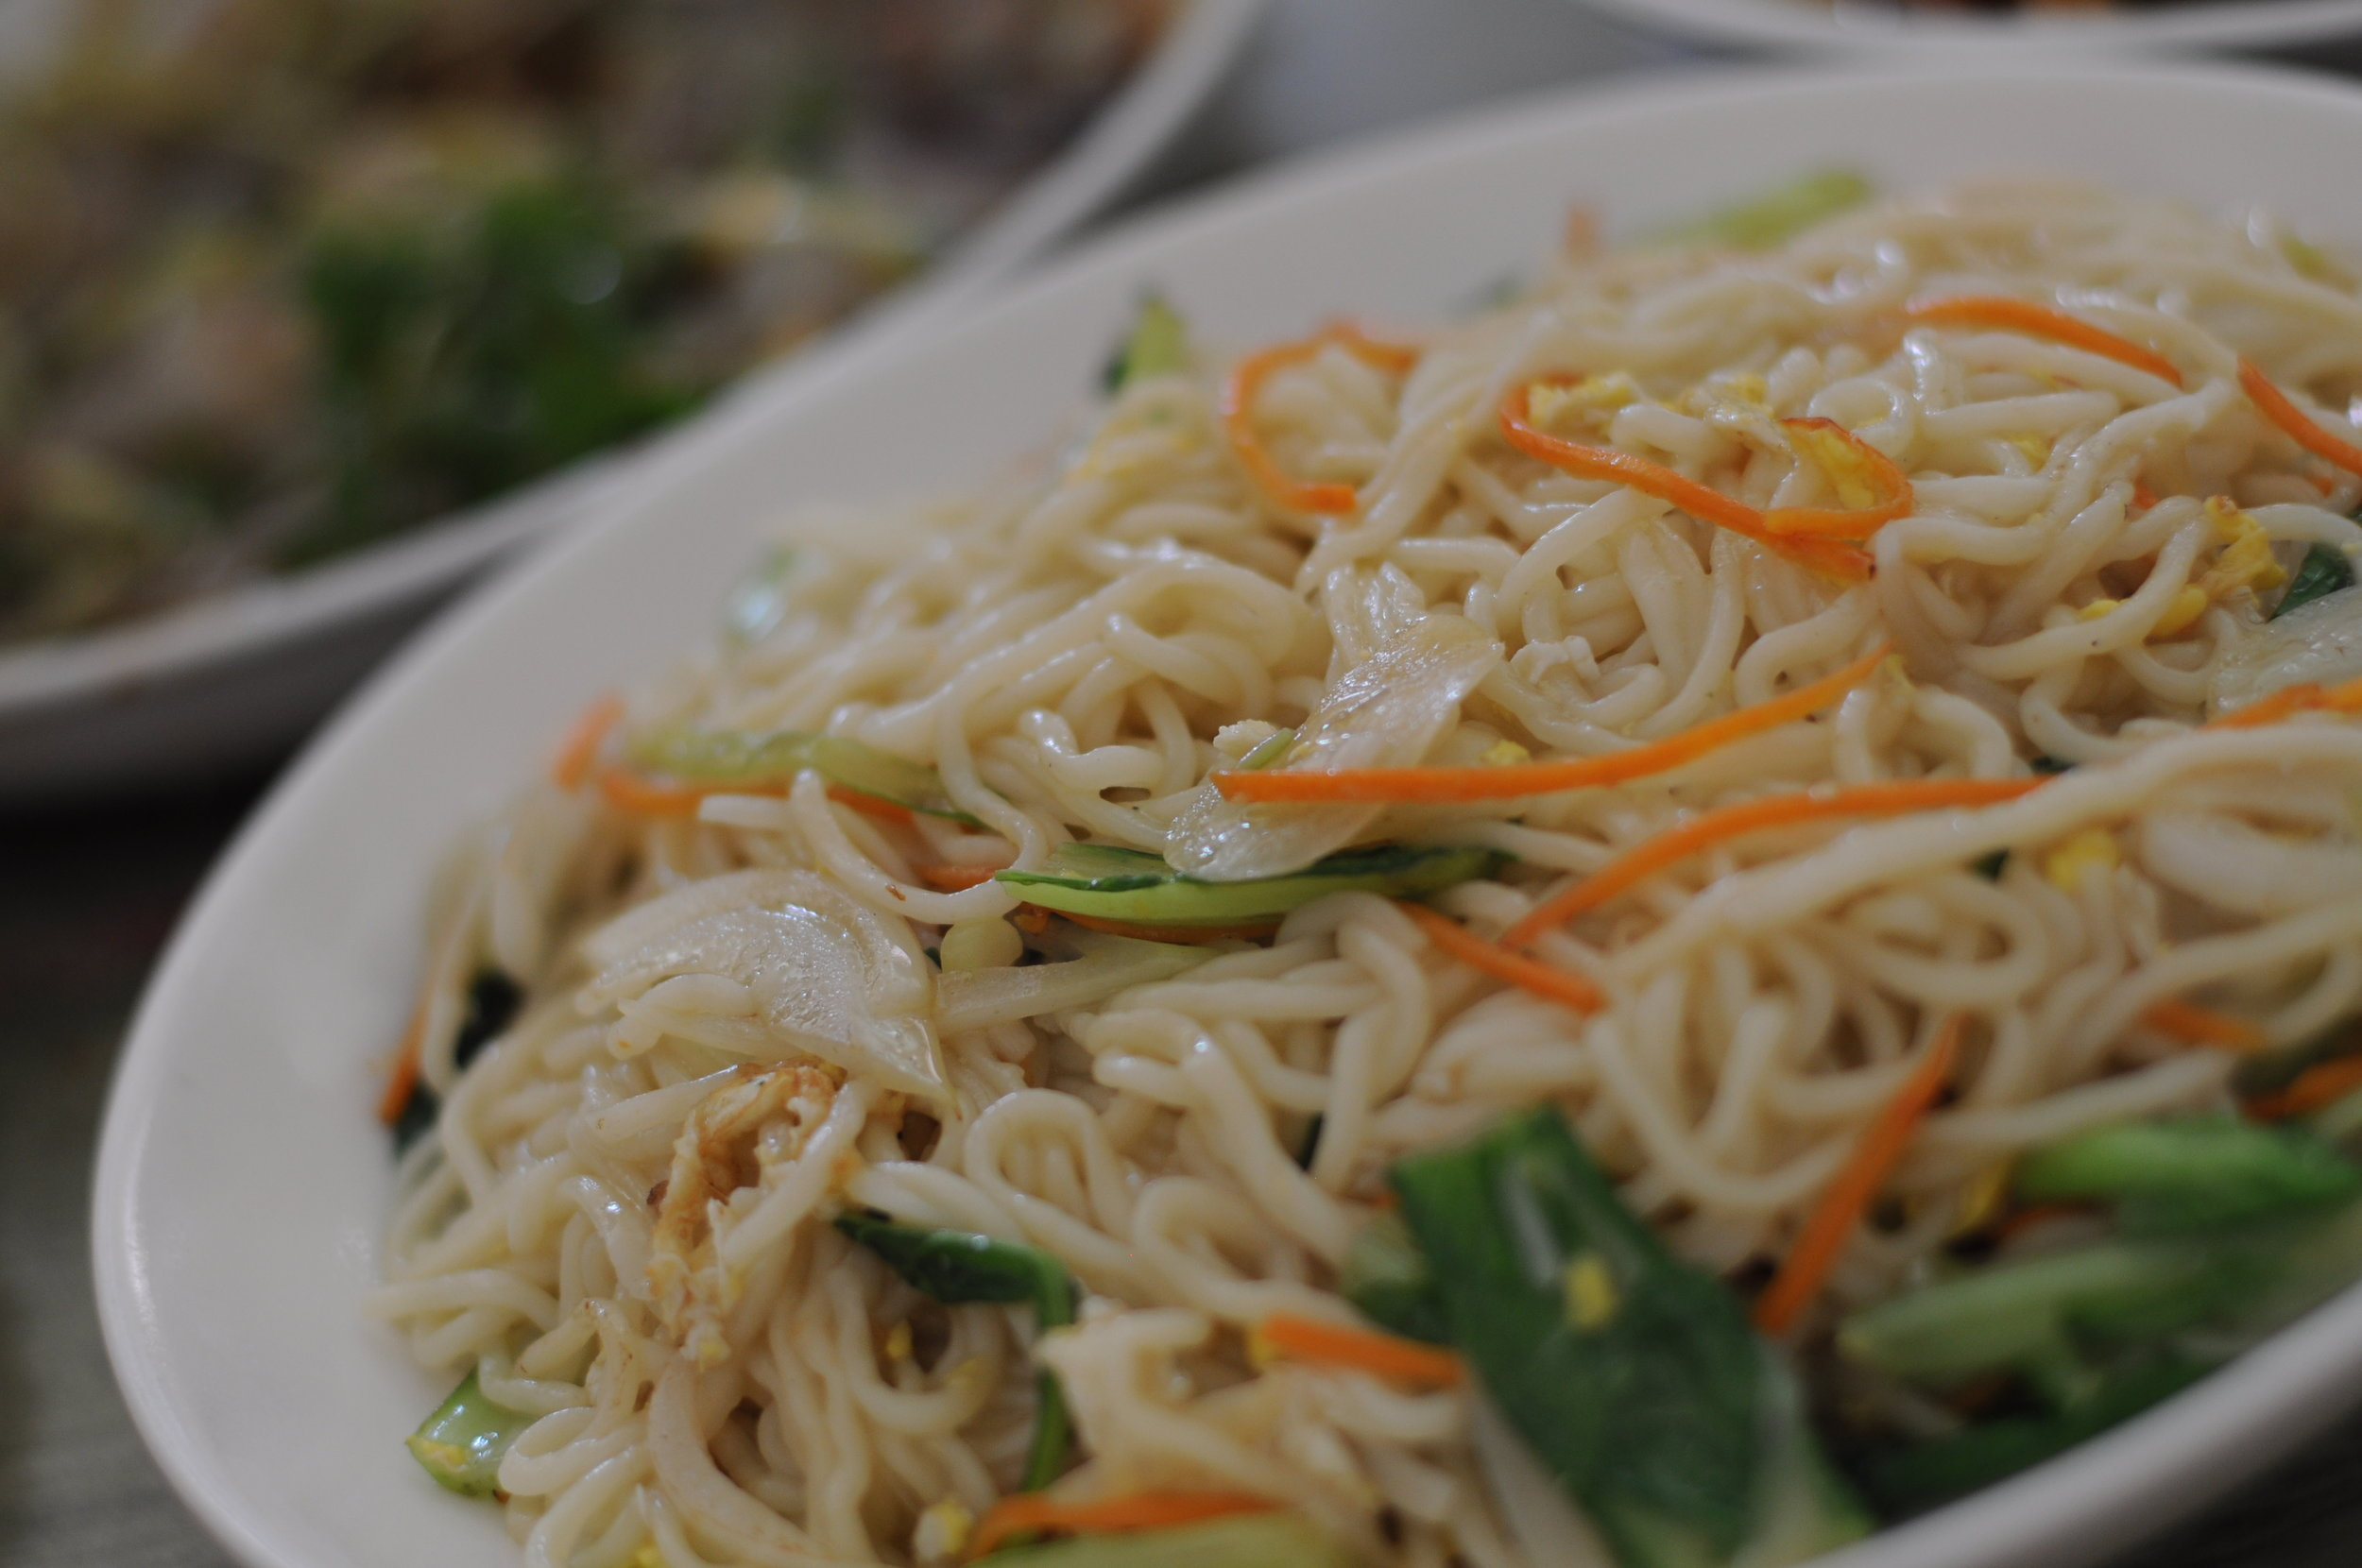 Fried noodles with eggs--a simple dish anyone can appreciate.